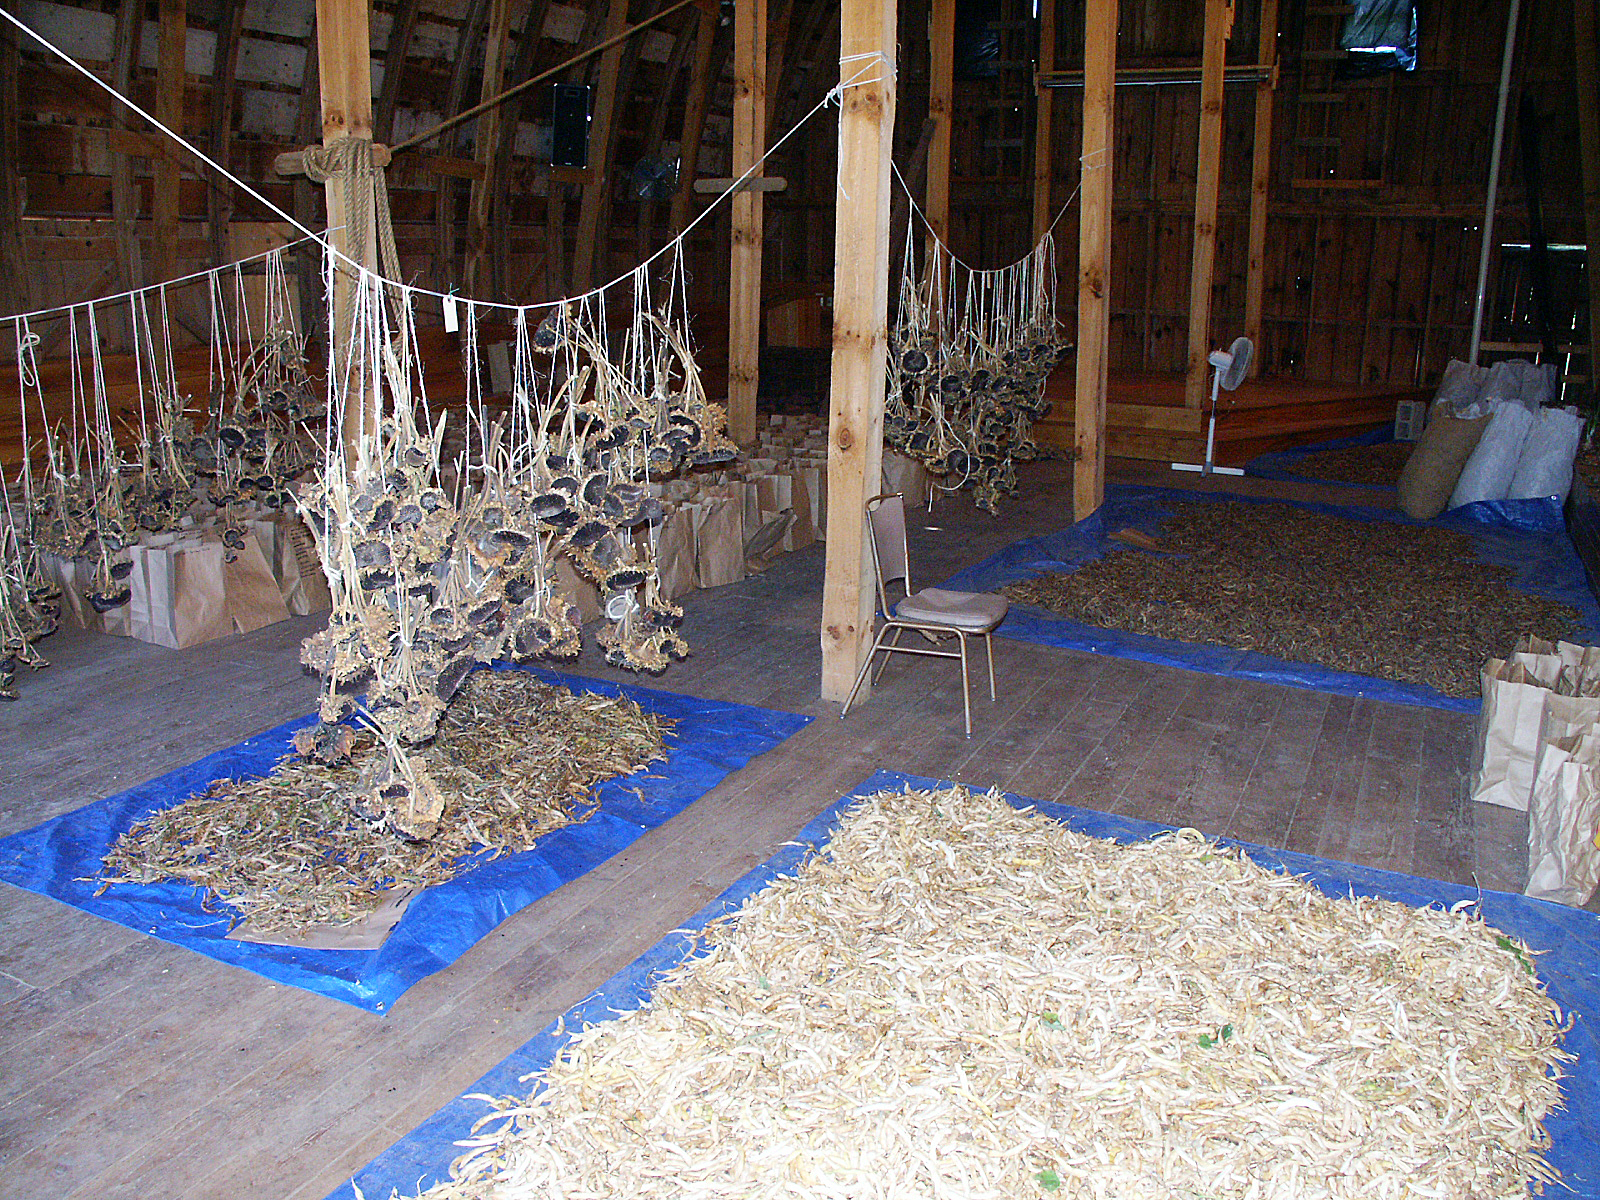 Seeds are hung and laid out for drying in the lower barn at Heritage Farm.